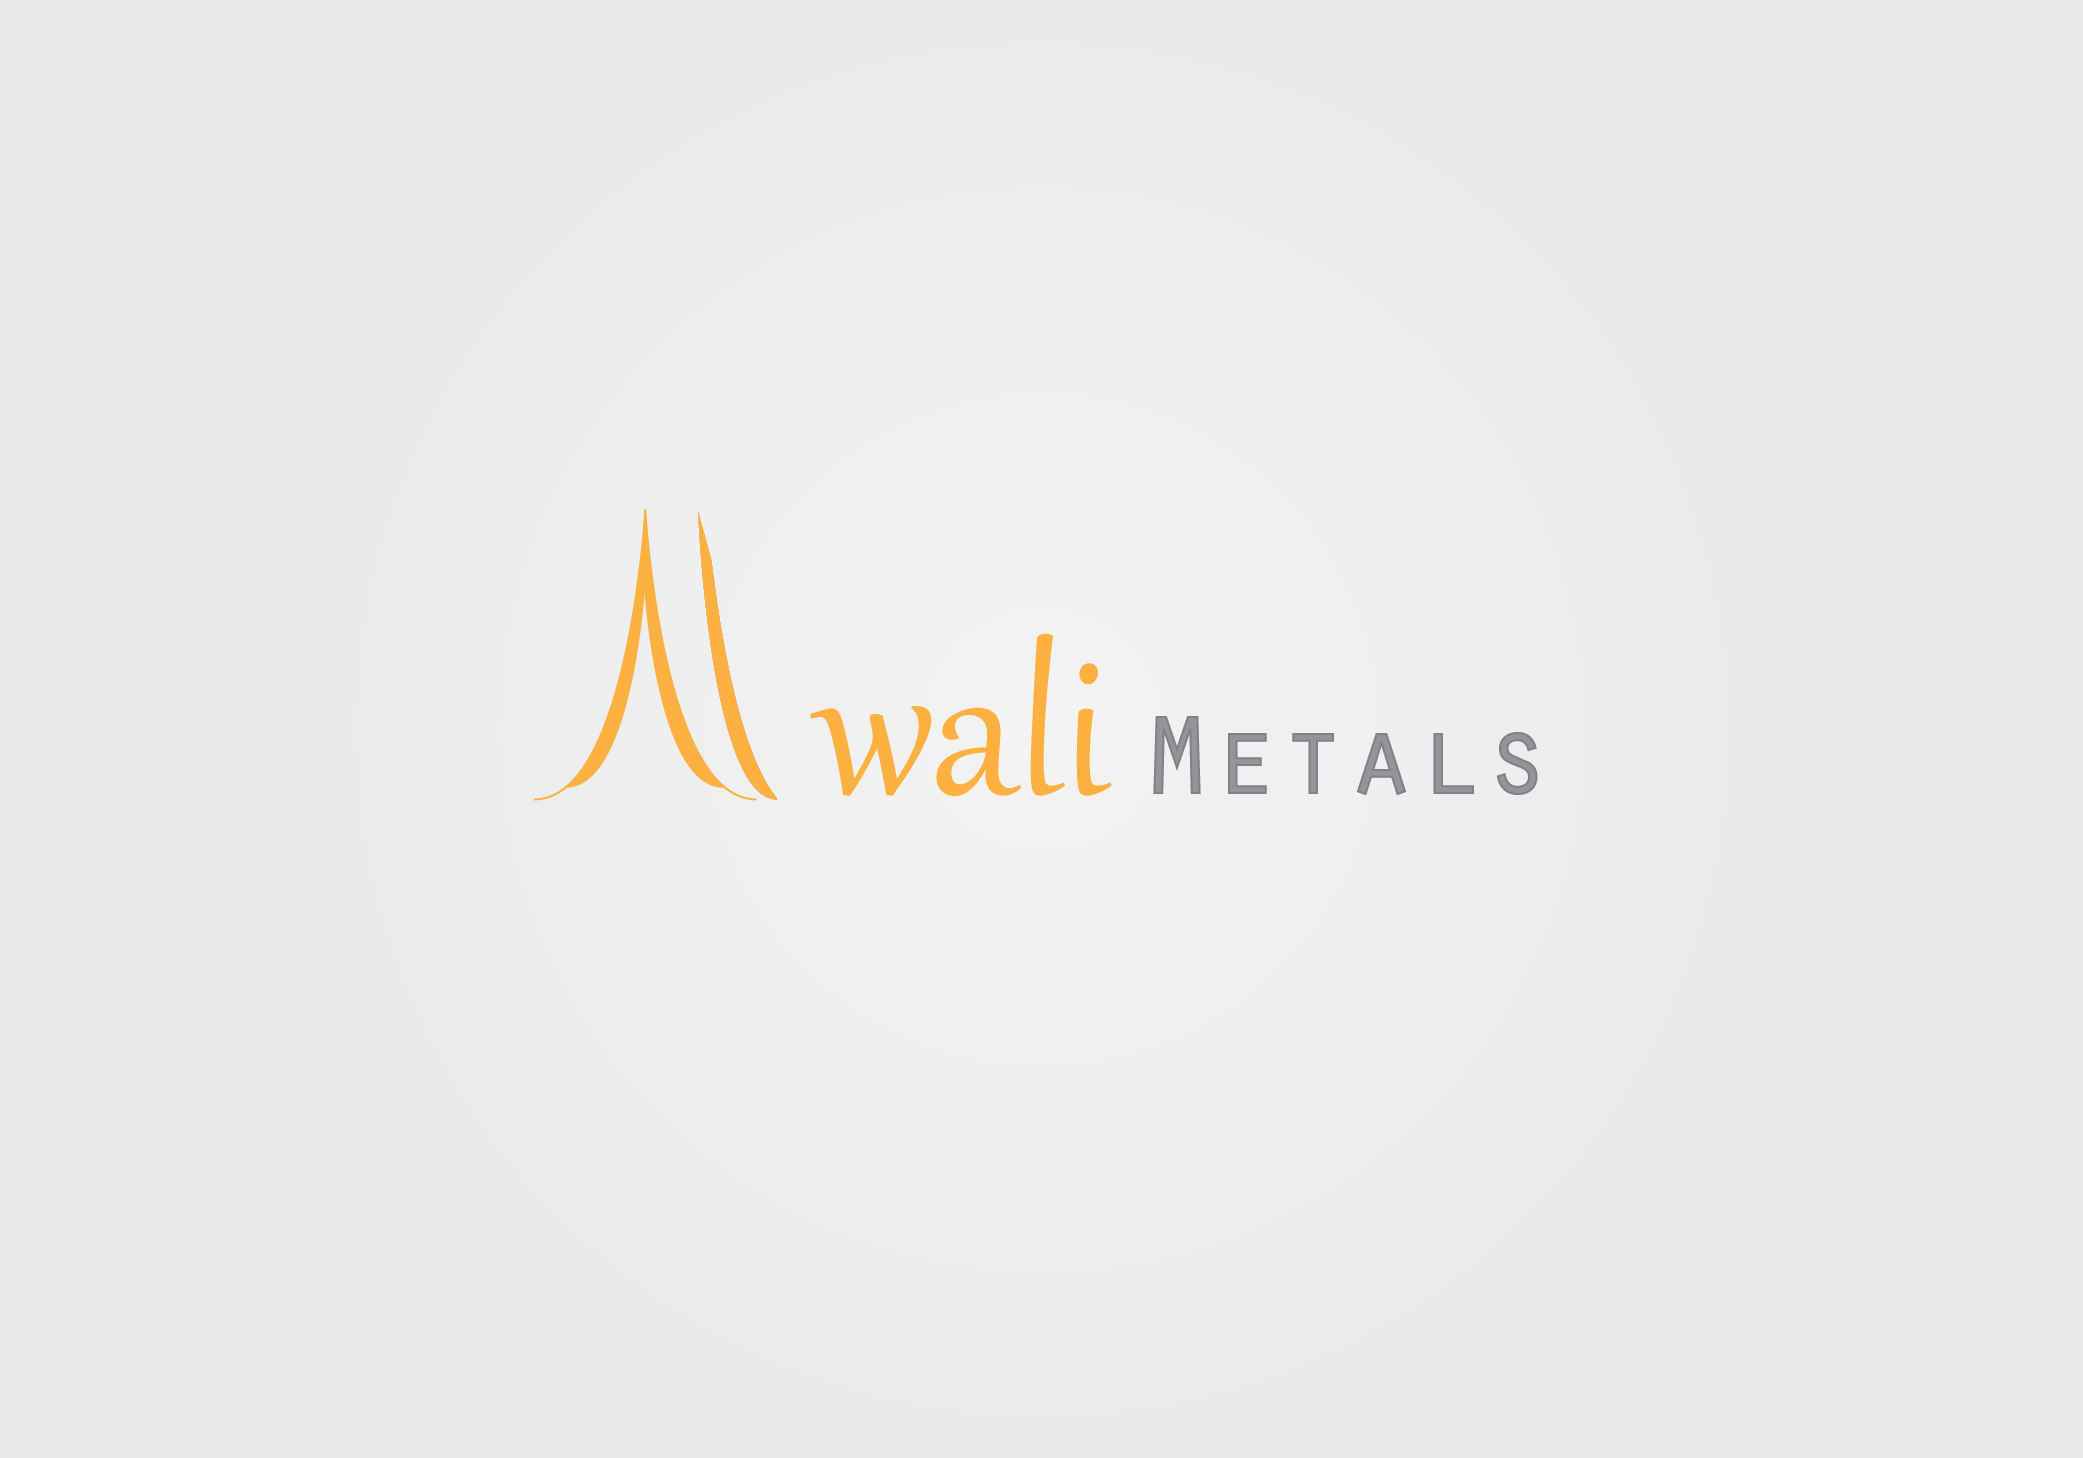 Logo Design by Private User - Entry No. 39 in the Logo Design Contest Inspiring Logo Design for Al Wali Metals.